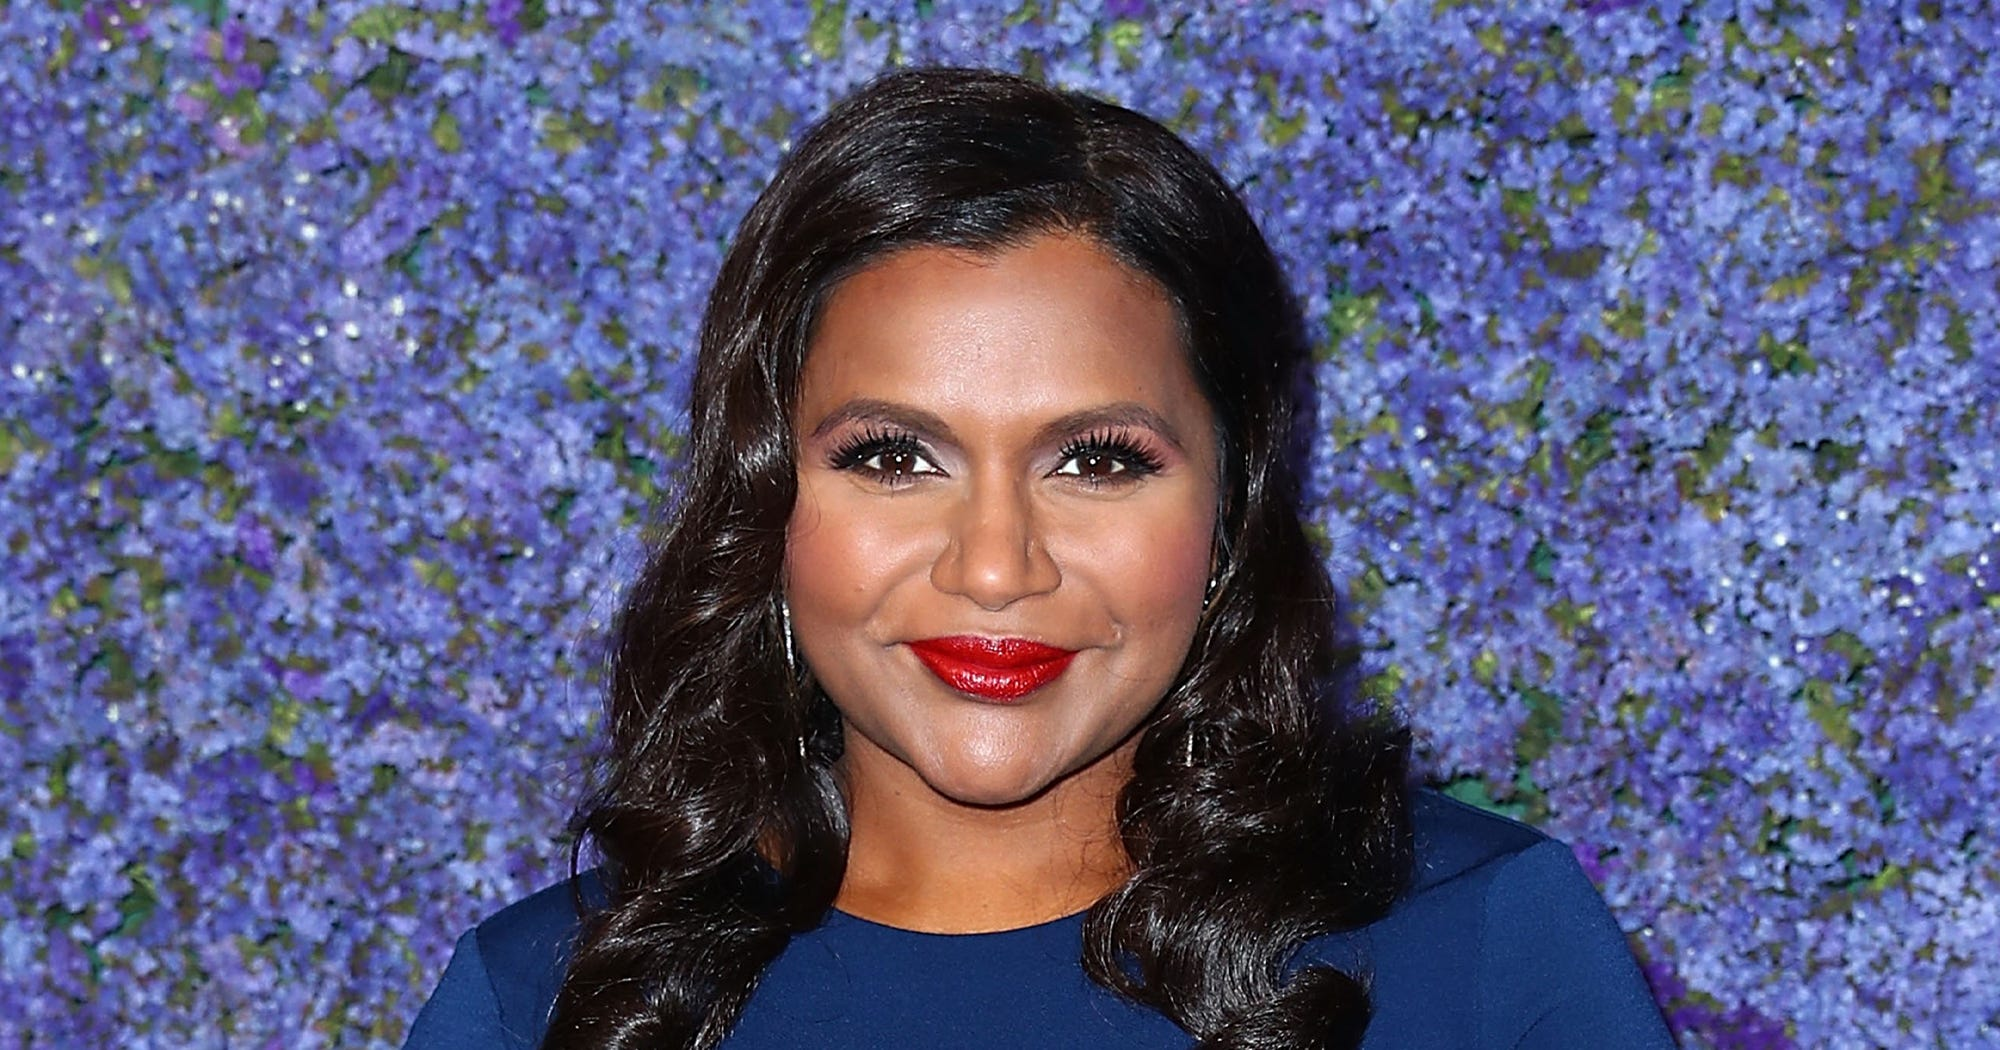 Mindy Kaling & Priyanka Chopra Are Teaming Up For The Wedding Movie Of The Year & We Can't Wait